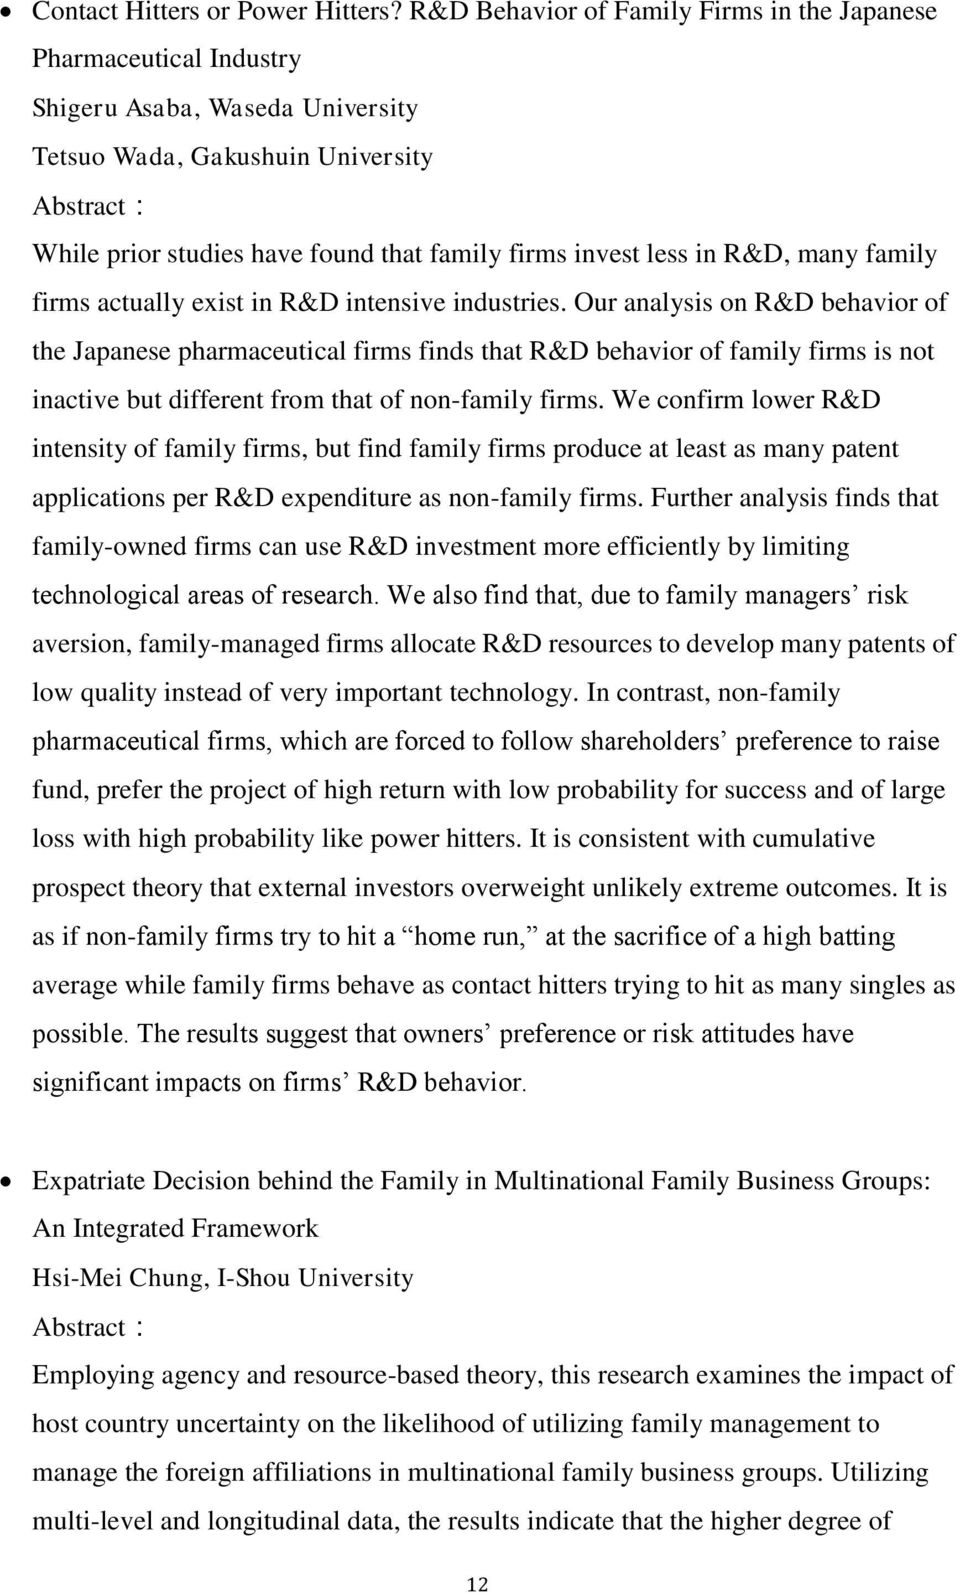 R&D, many family firms actually exist in R&D intensive industries.